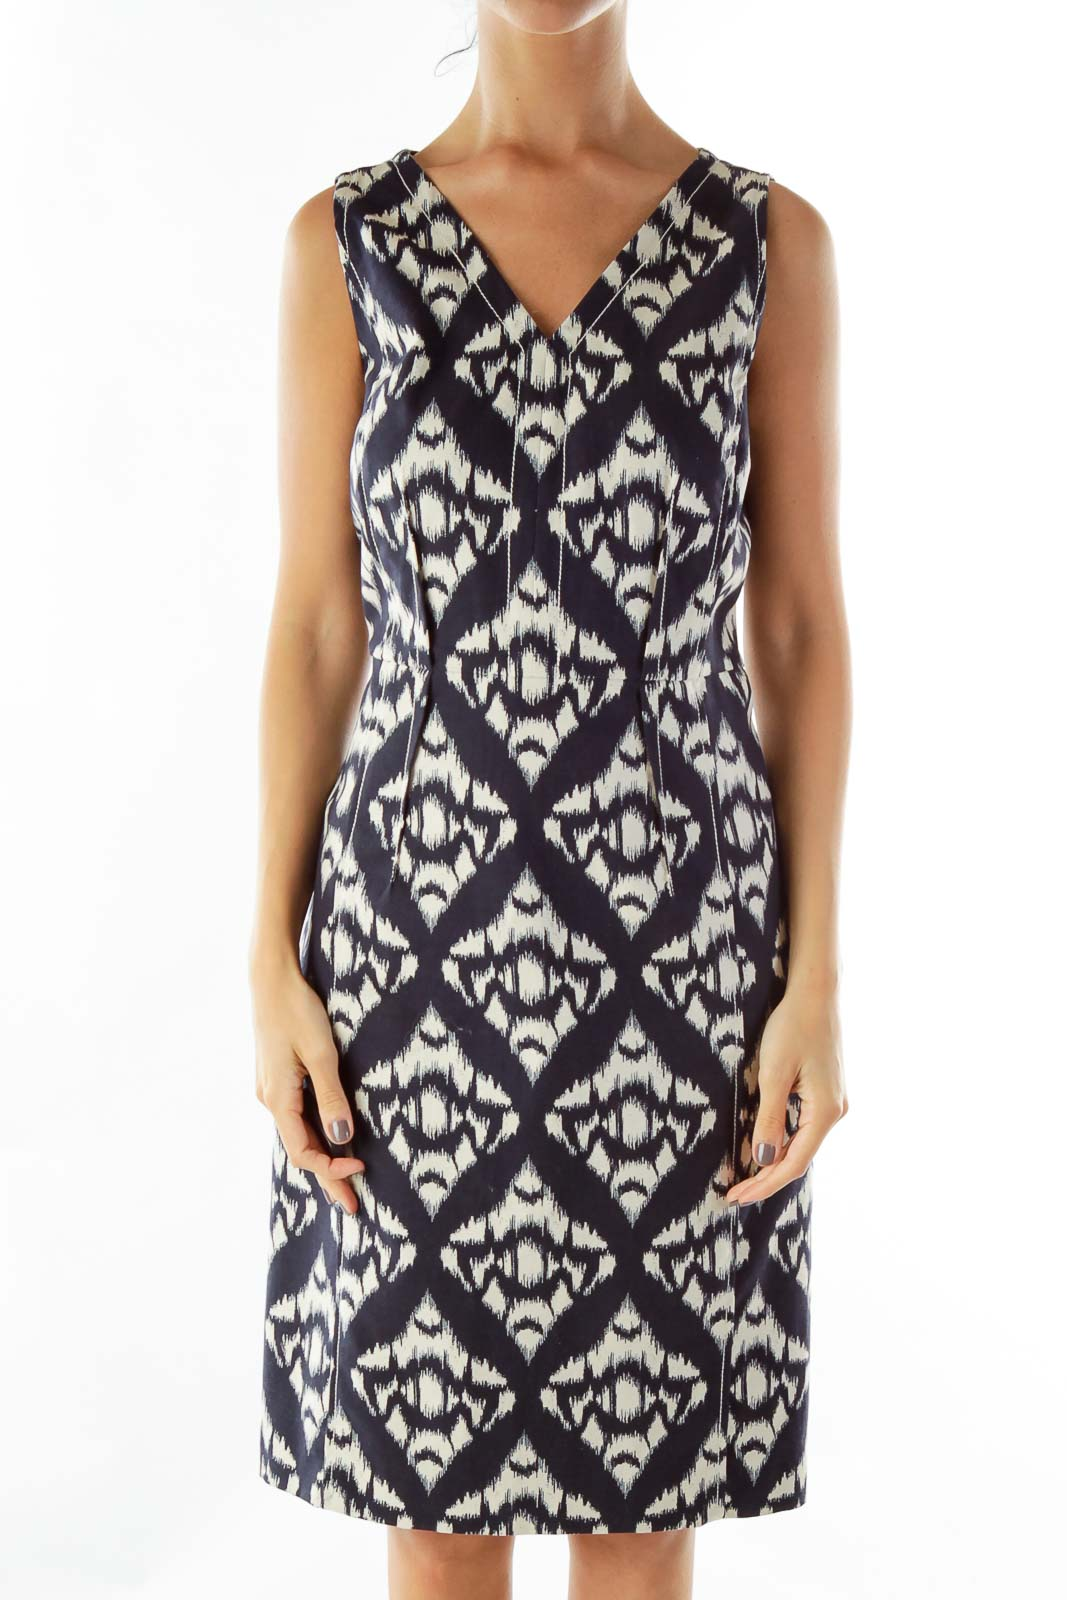 Black White Woven Sleeveless Work Dress